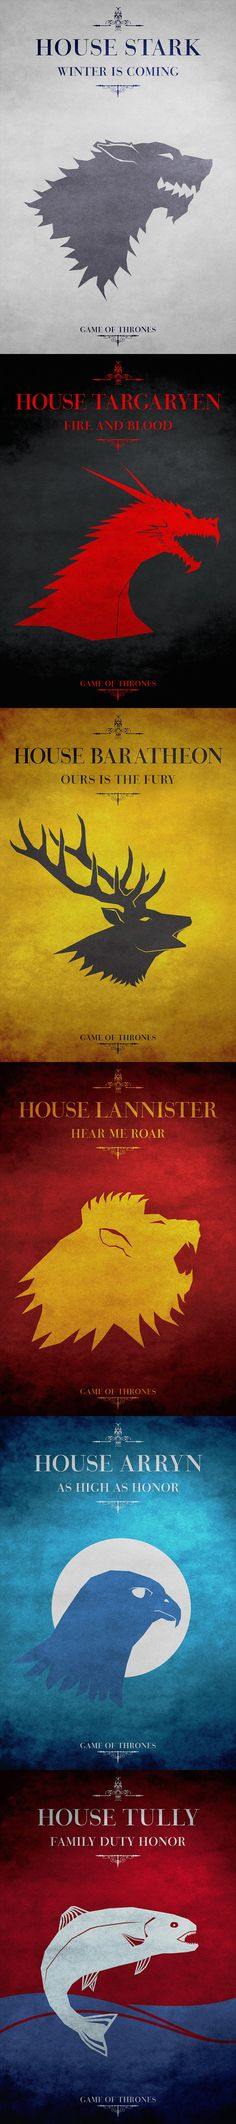 Game of Thrones Posters | Things for Geeks